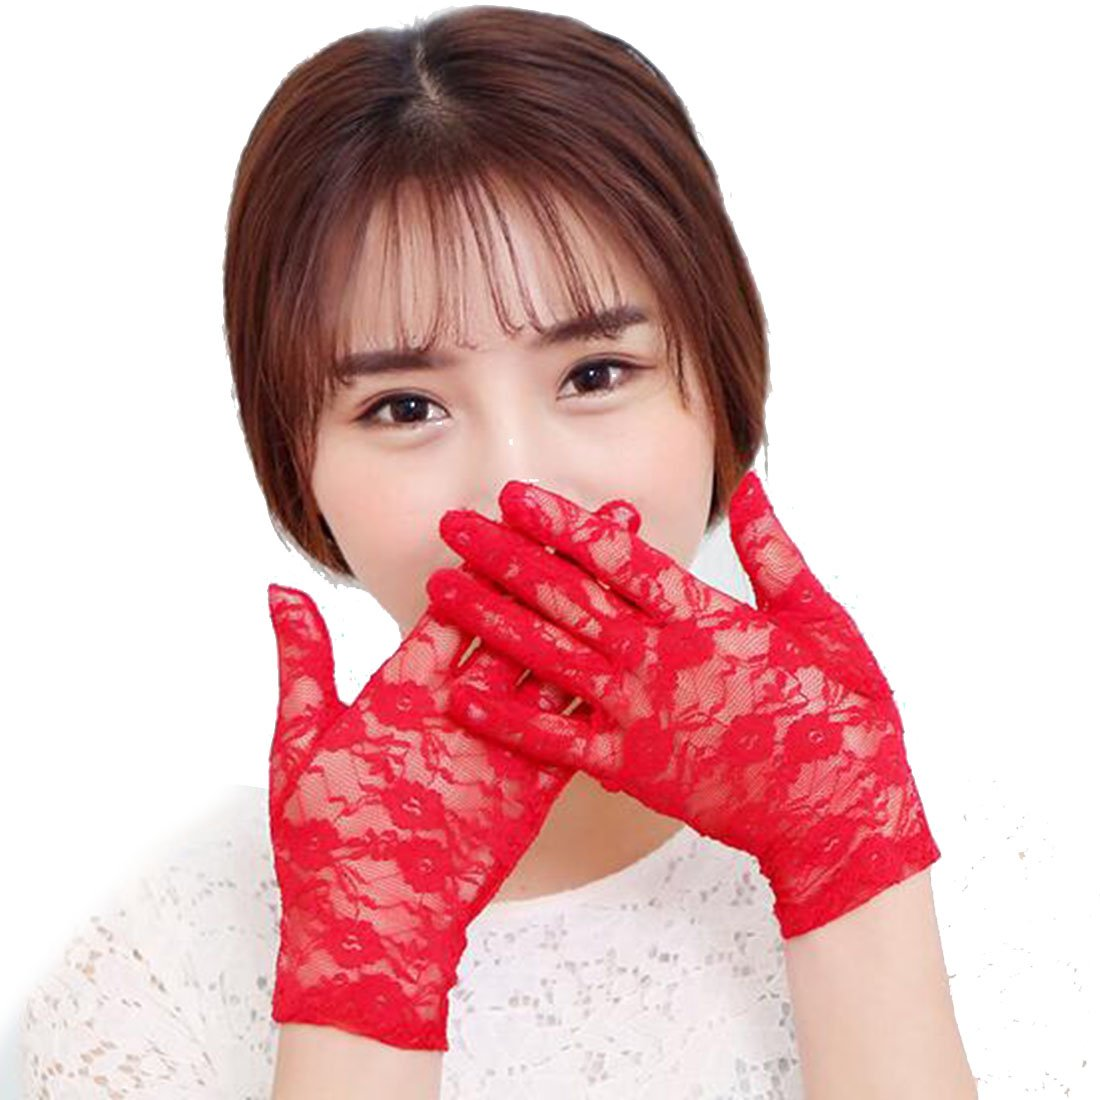 1Pair Women's Lace Hollow-Out Sun Protection Skid Resistance Pattern Lace Gloves Red DUFU160730